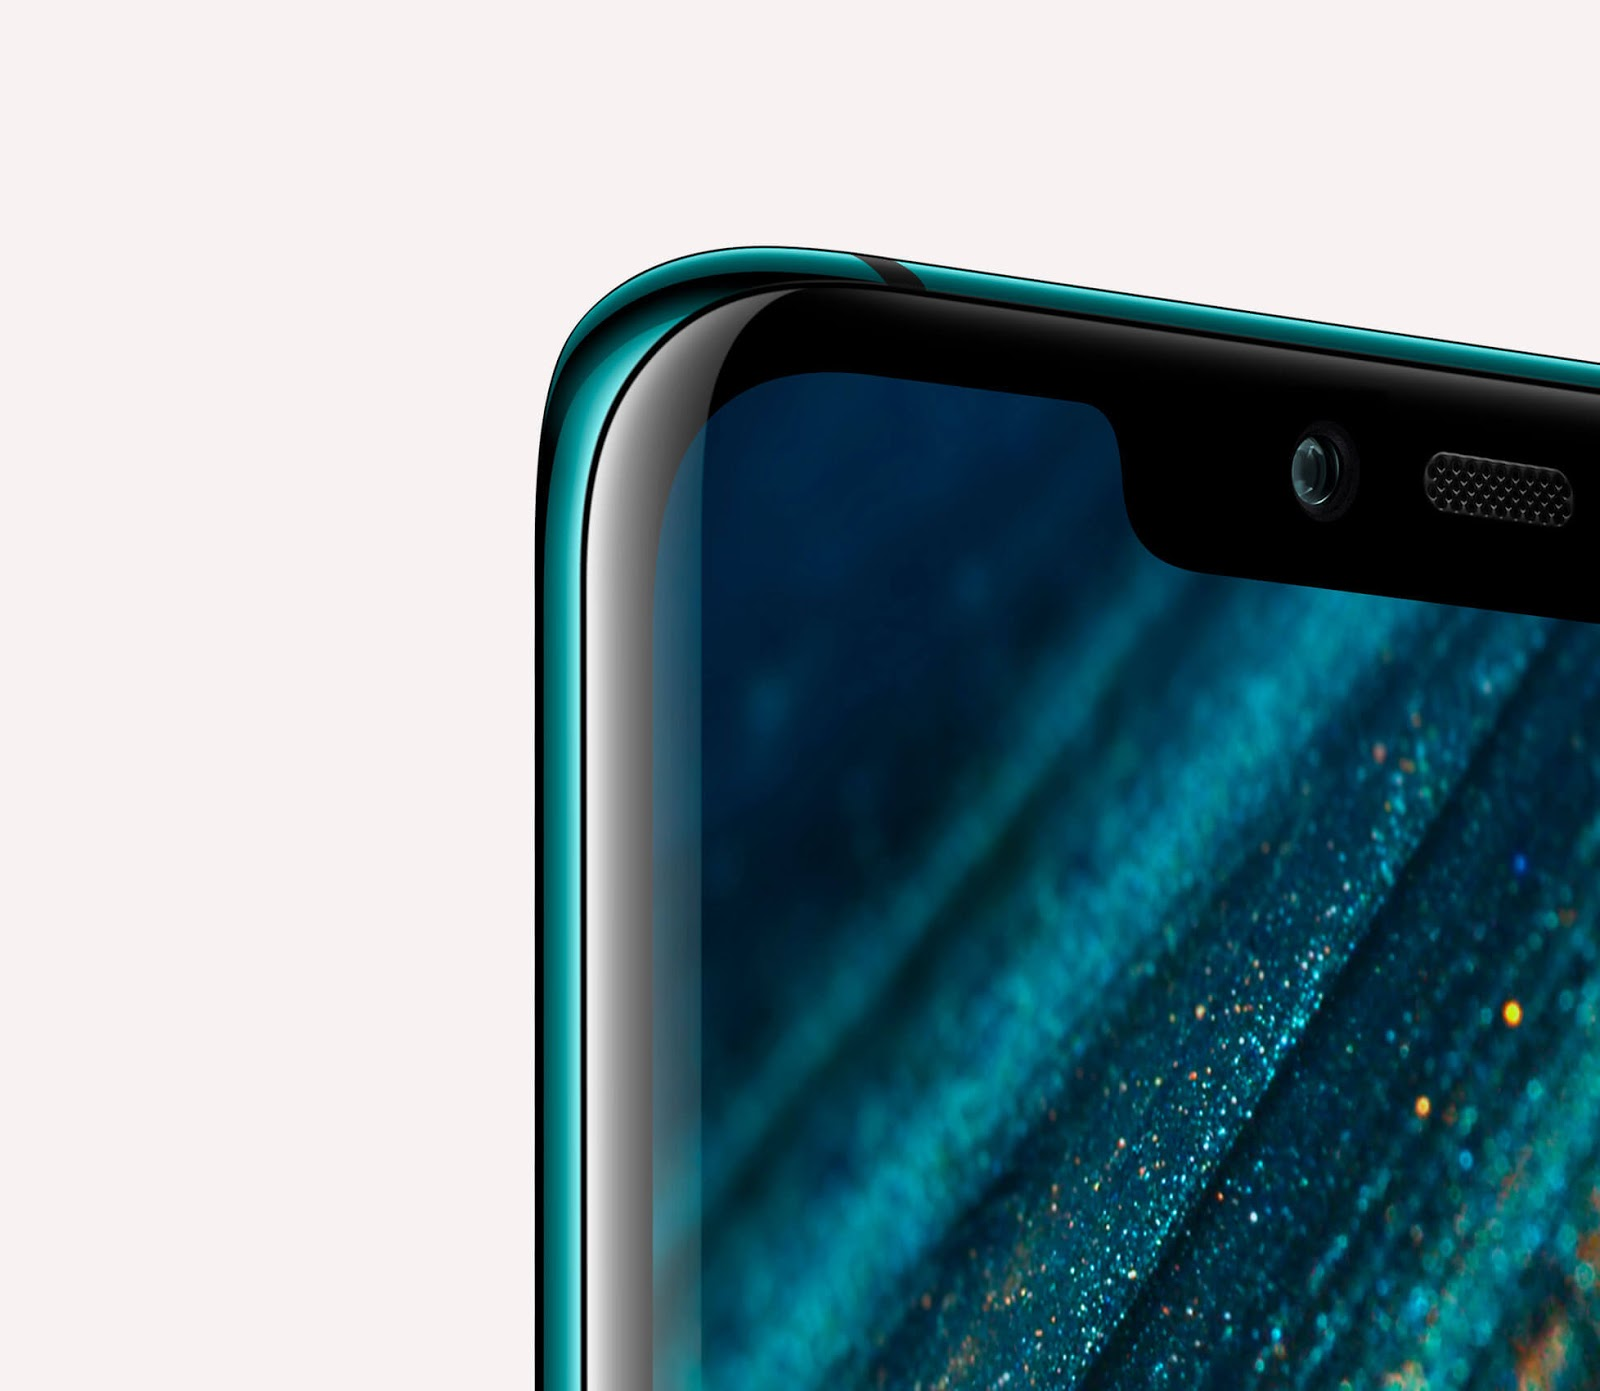 Huawei Mate 20 Pro Launched With 3D Face Unlock, In-Display Fingerprint scanner, 4,200mAh Battery, And More